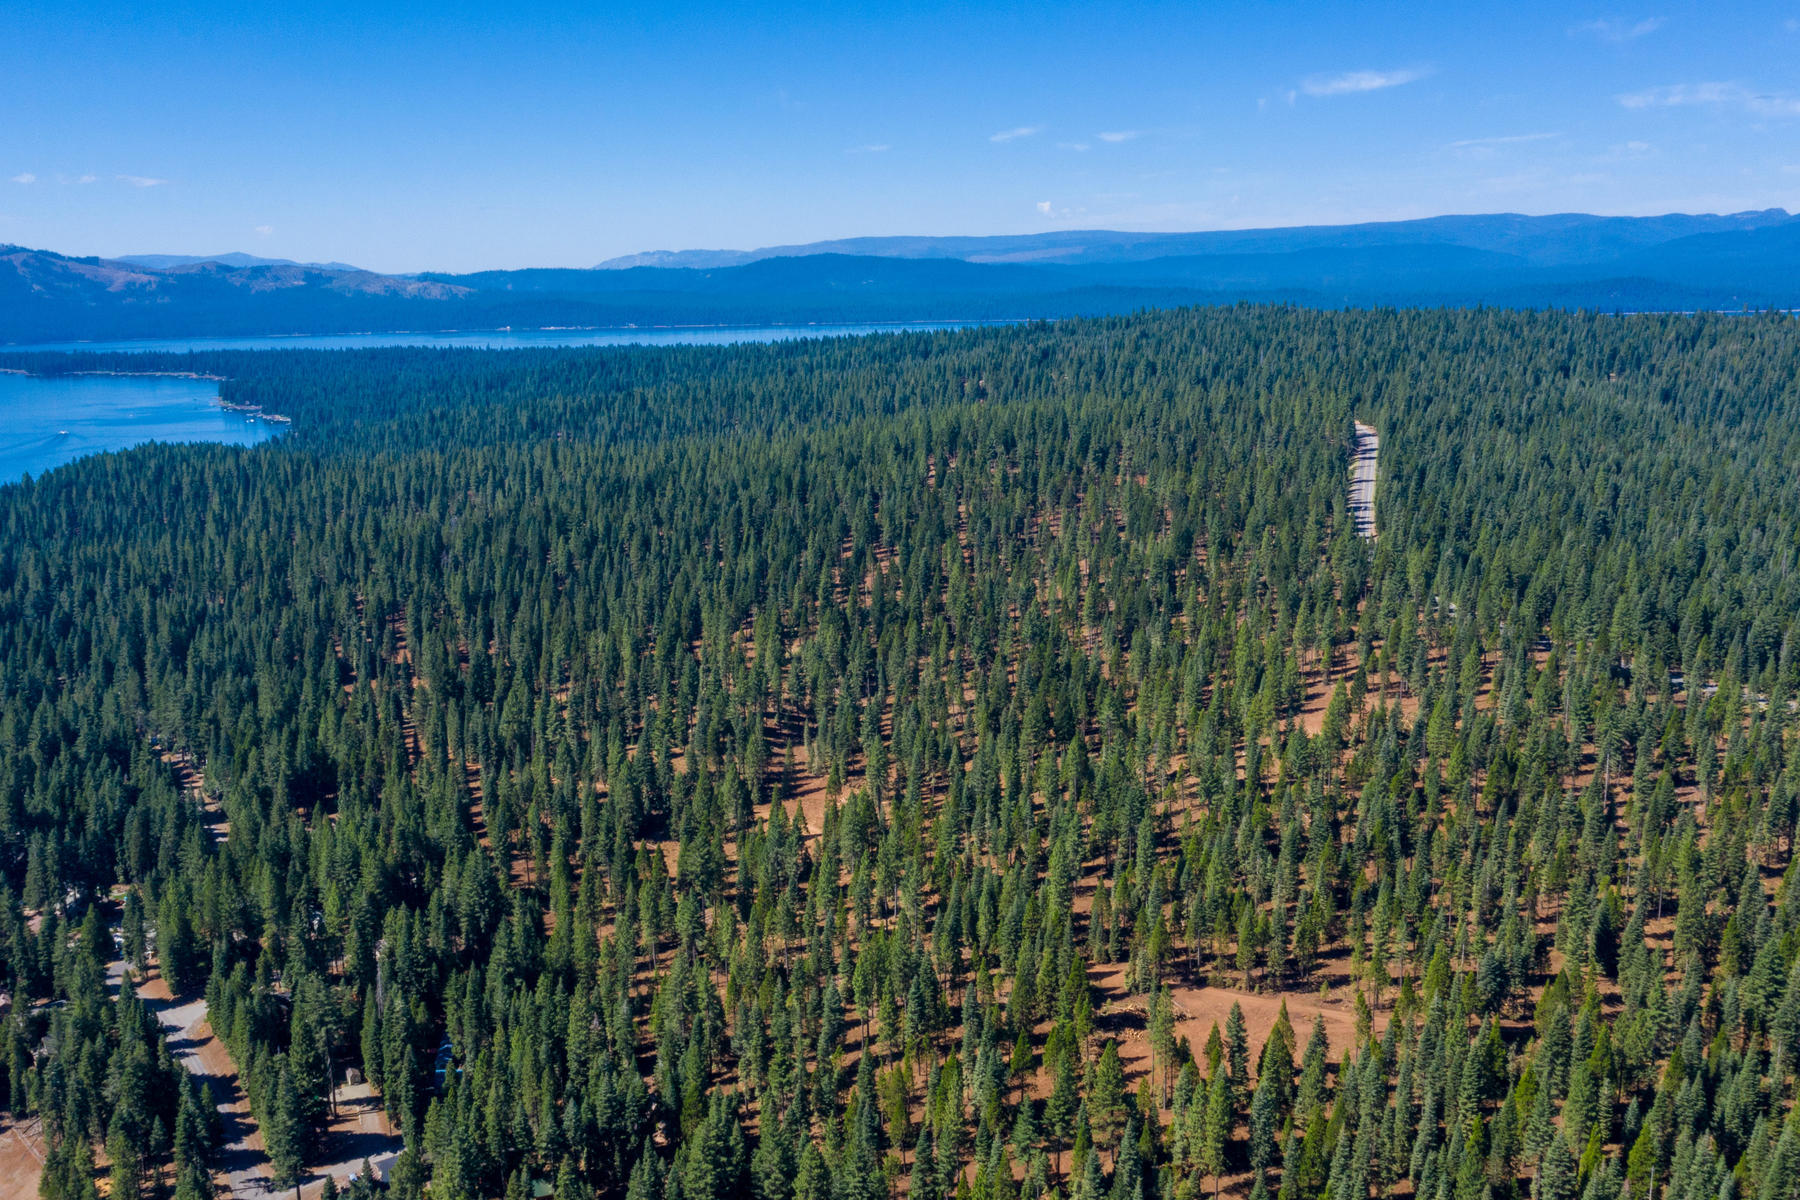 Property 为 销售 在 103-02 Clifford Drive Lake Almanor, California 96137 103-02 Clifford Drive Lake Almanor, 加利福尼亚州 96137 美国